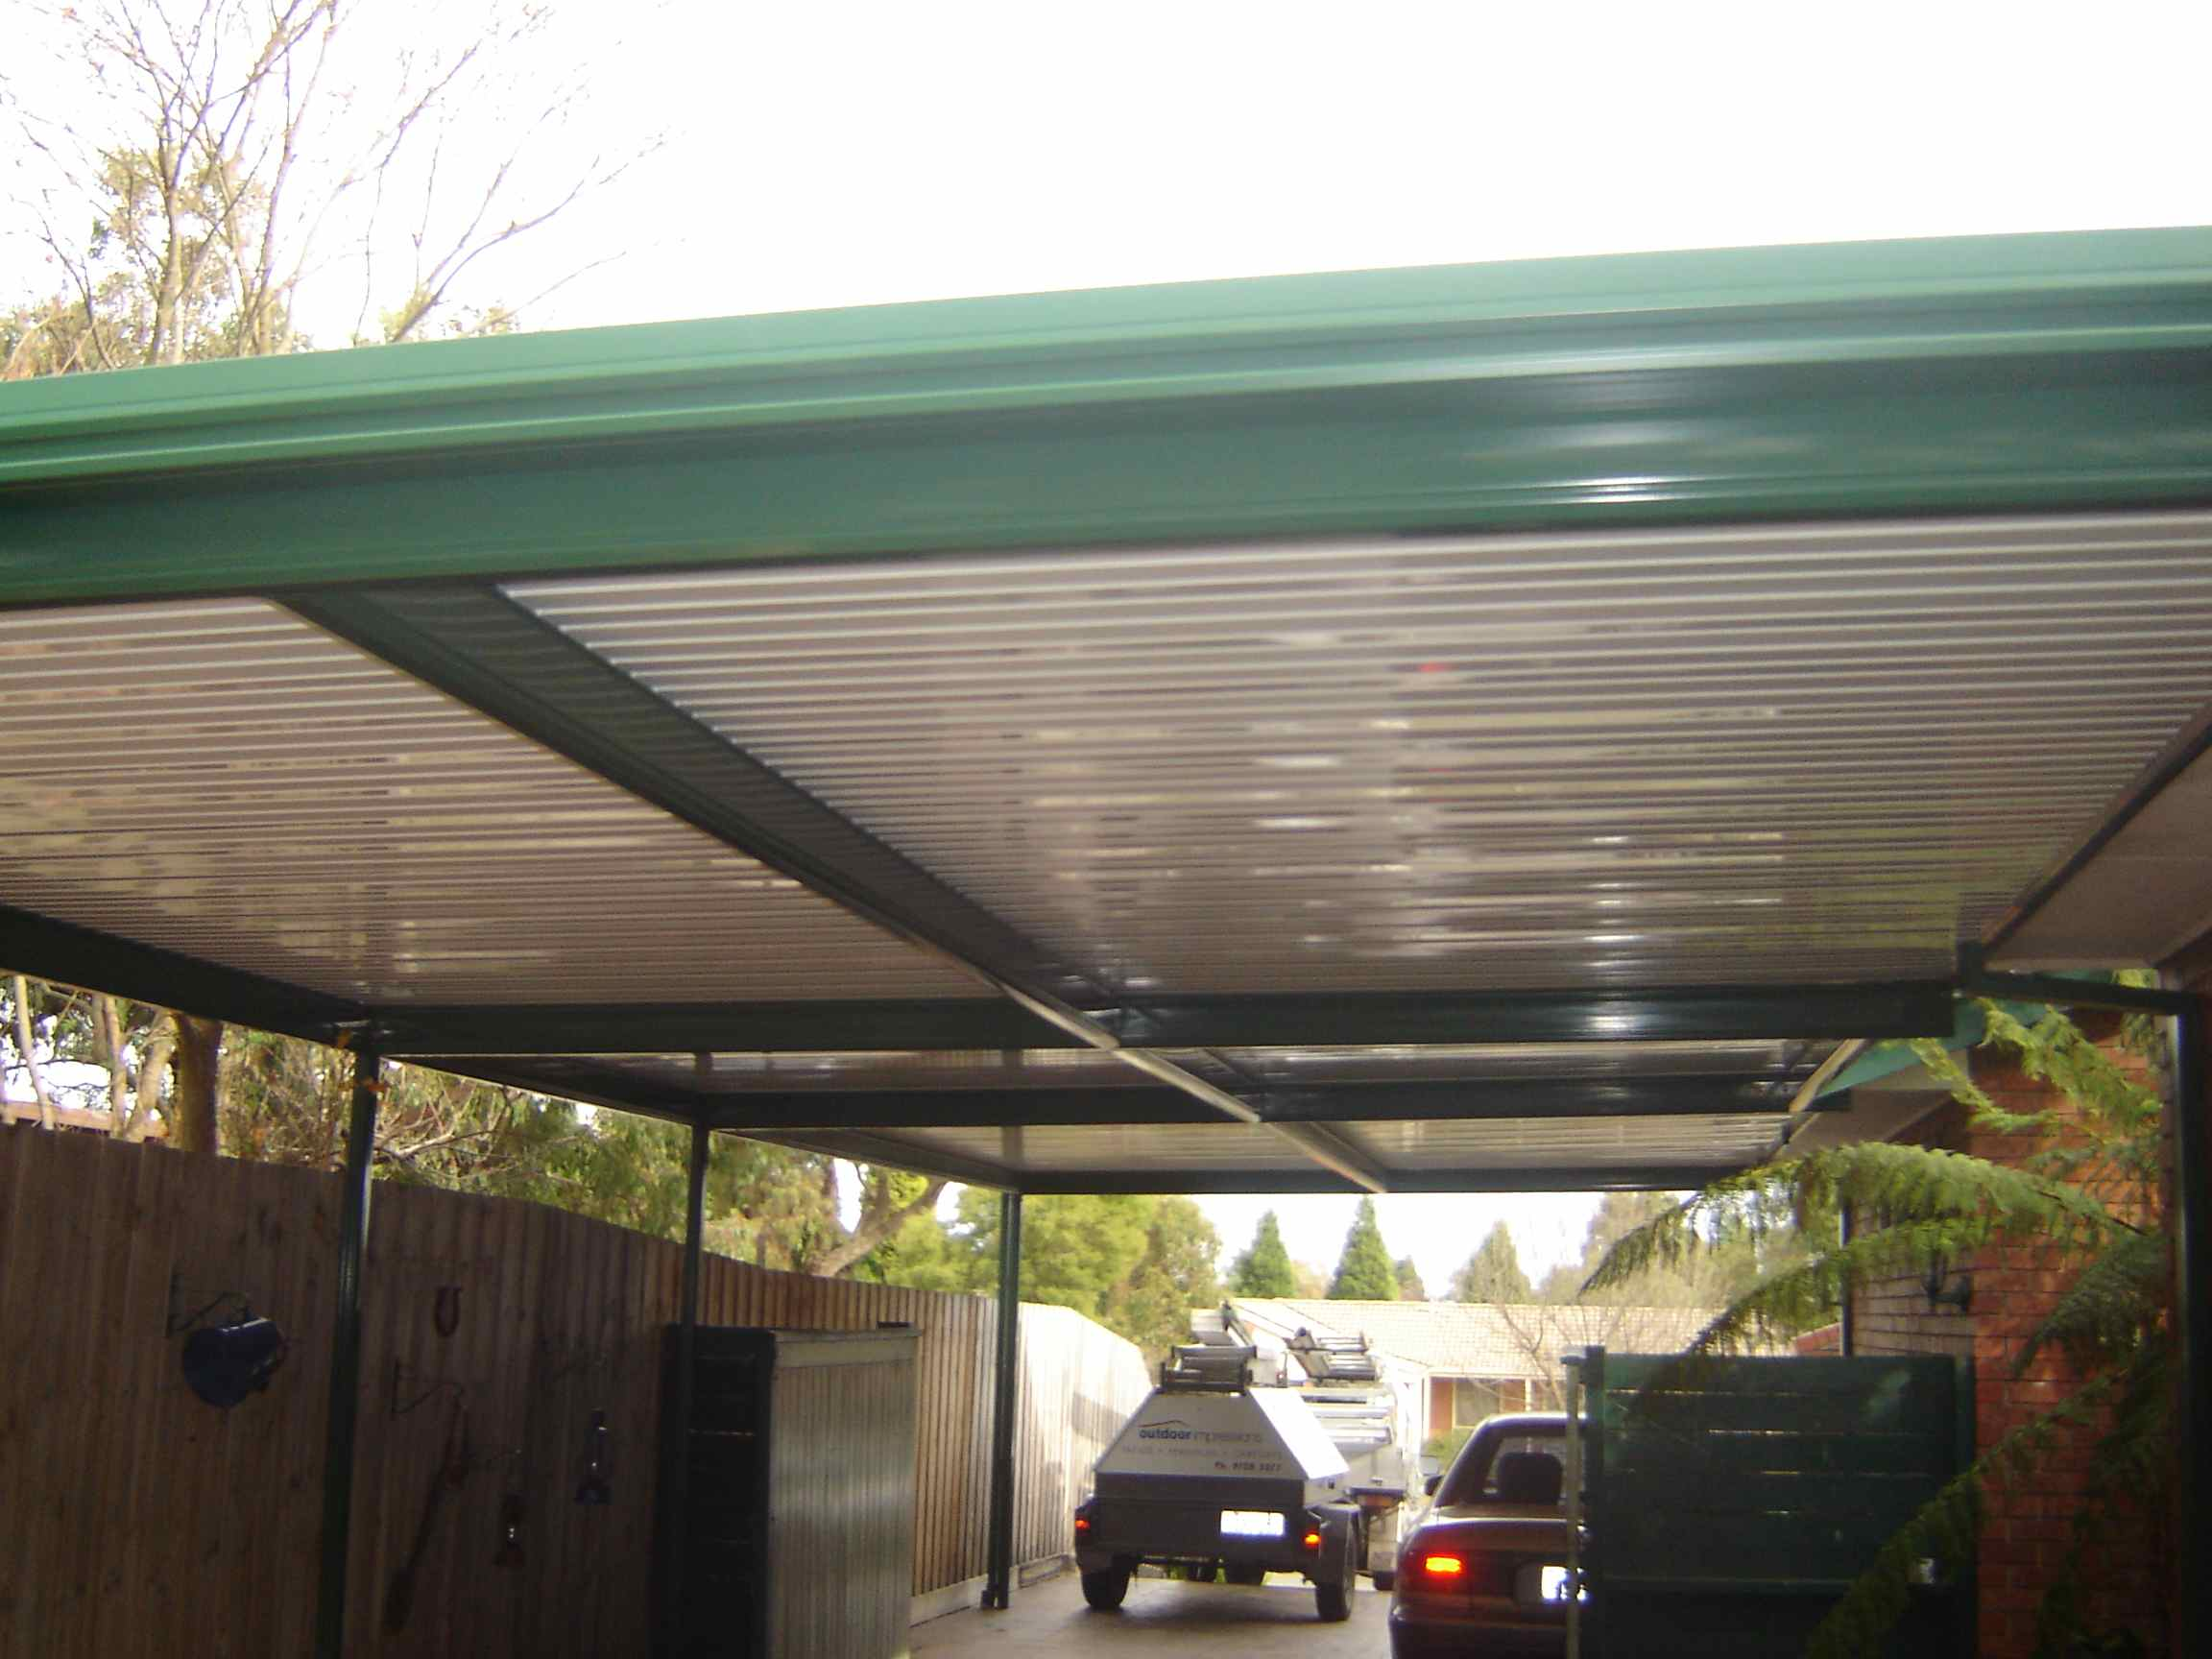 Flat Roof Metal Carports http://www.outdoorimpressions.com.au/products/carports/